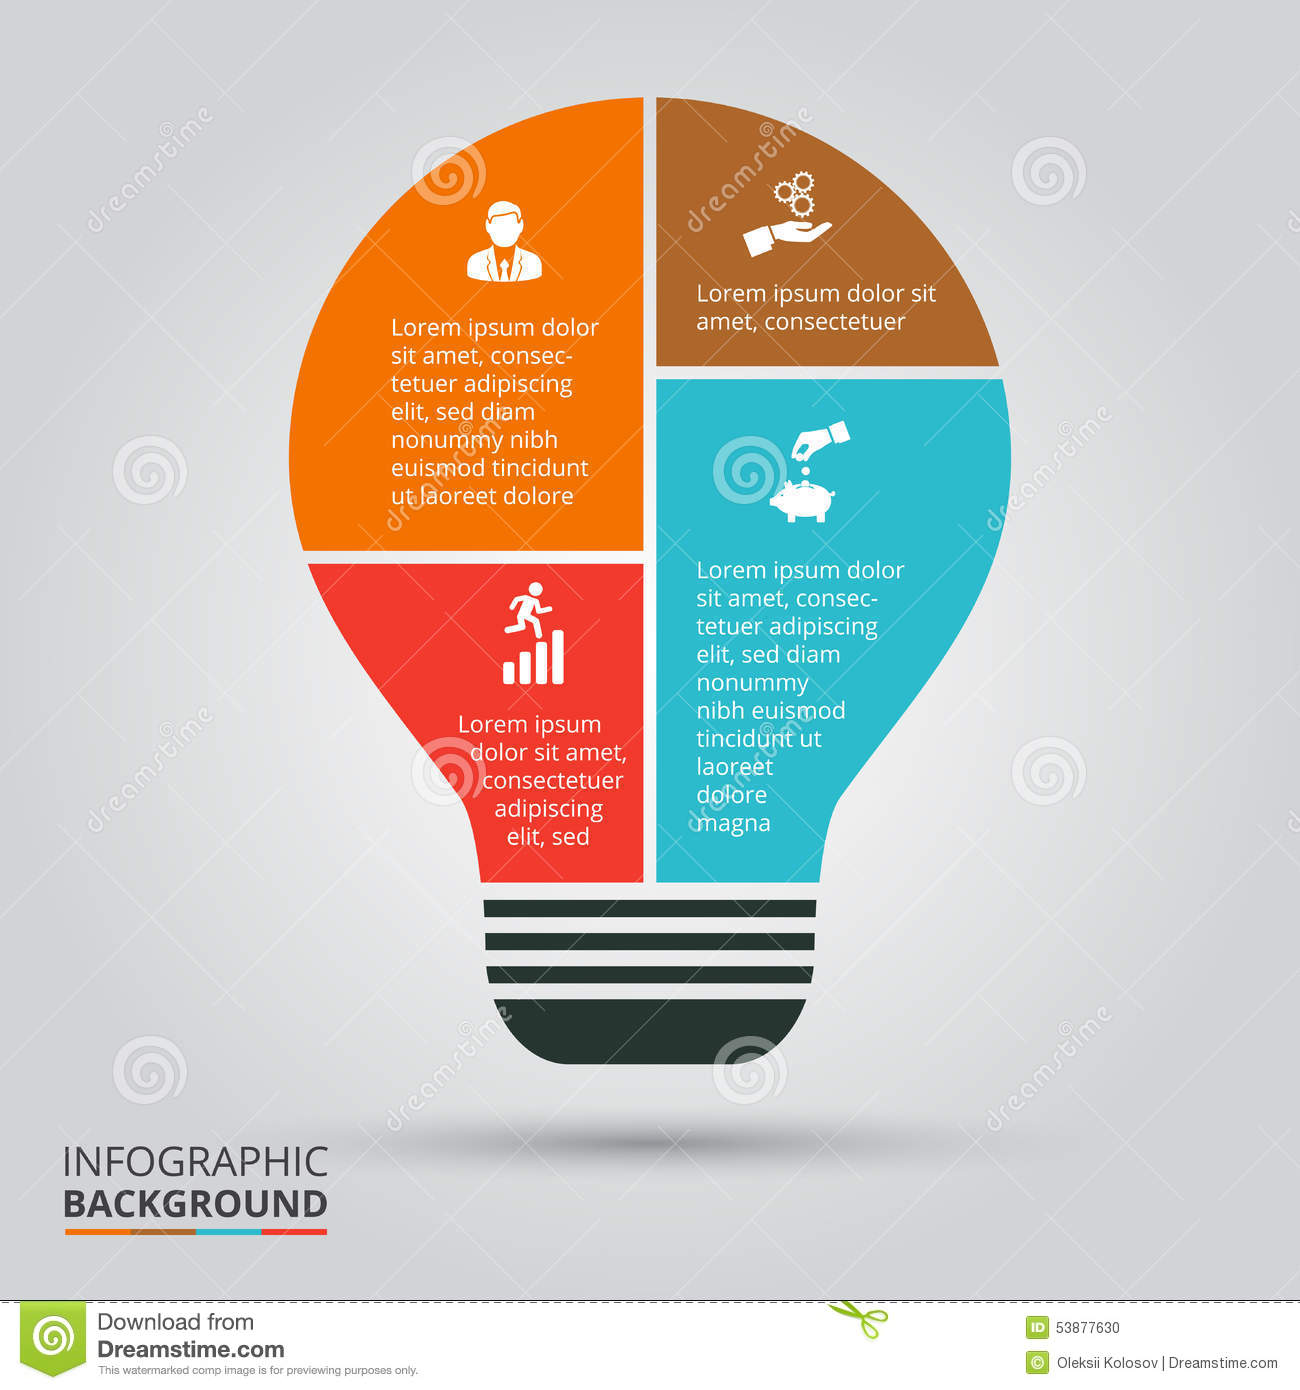 Fluorescent Lamp Vector Light Bulb For Infographic. Stock Vector - Image